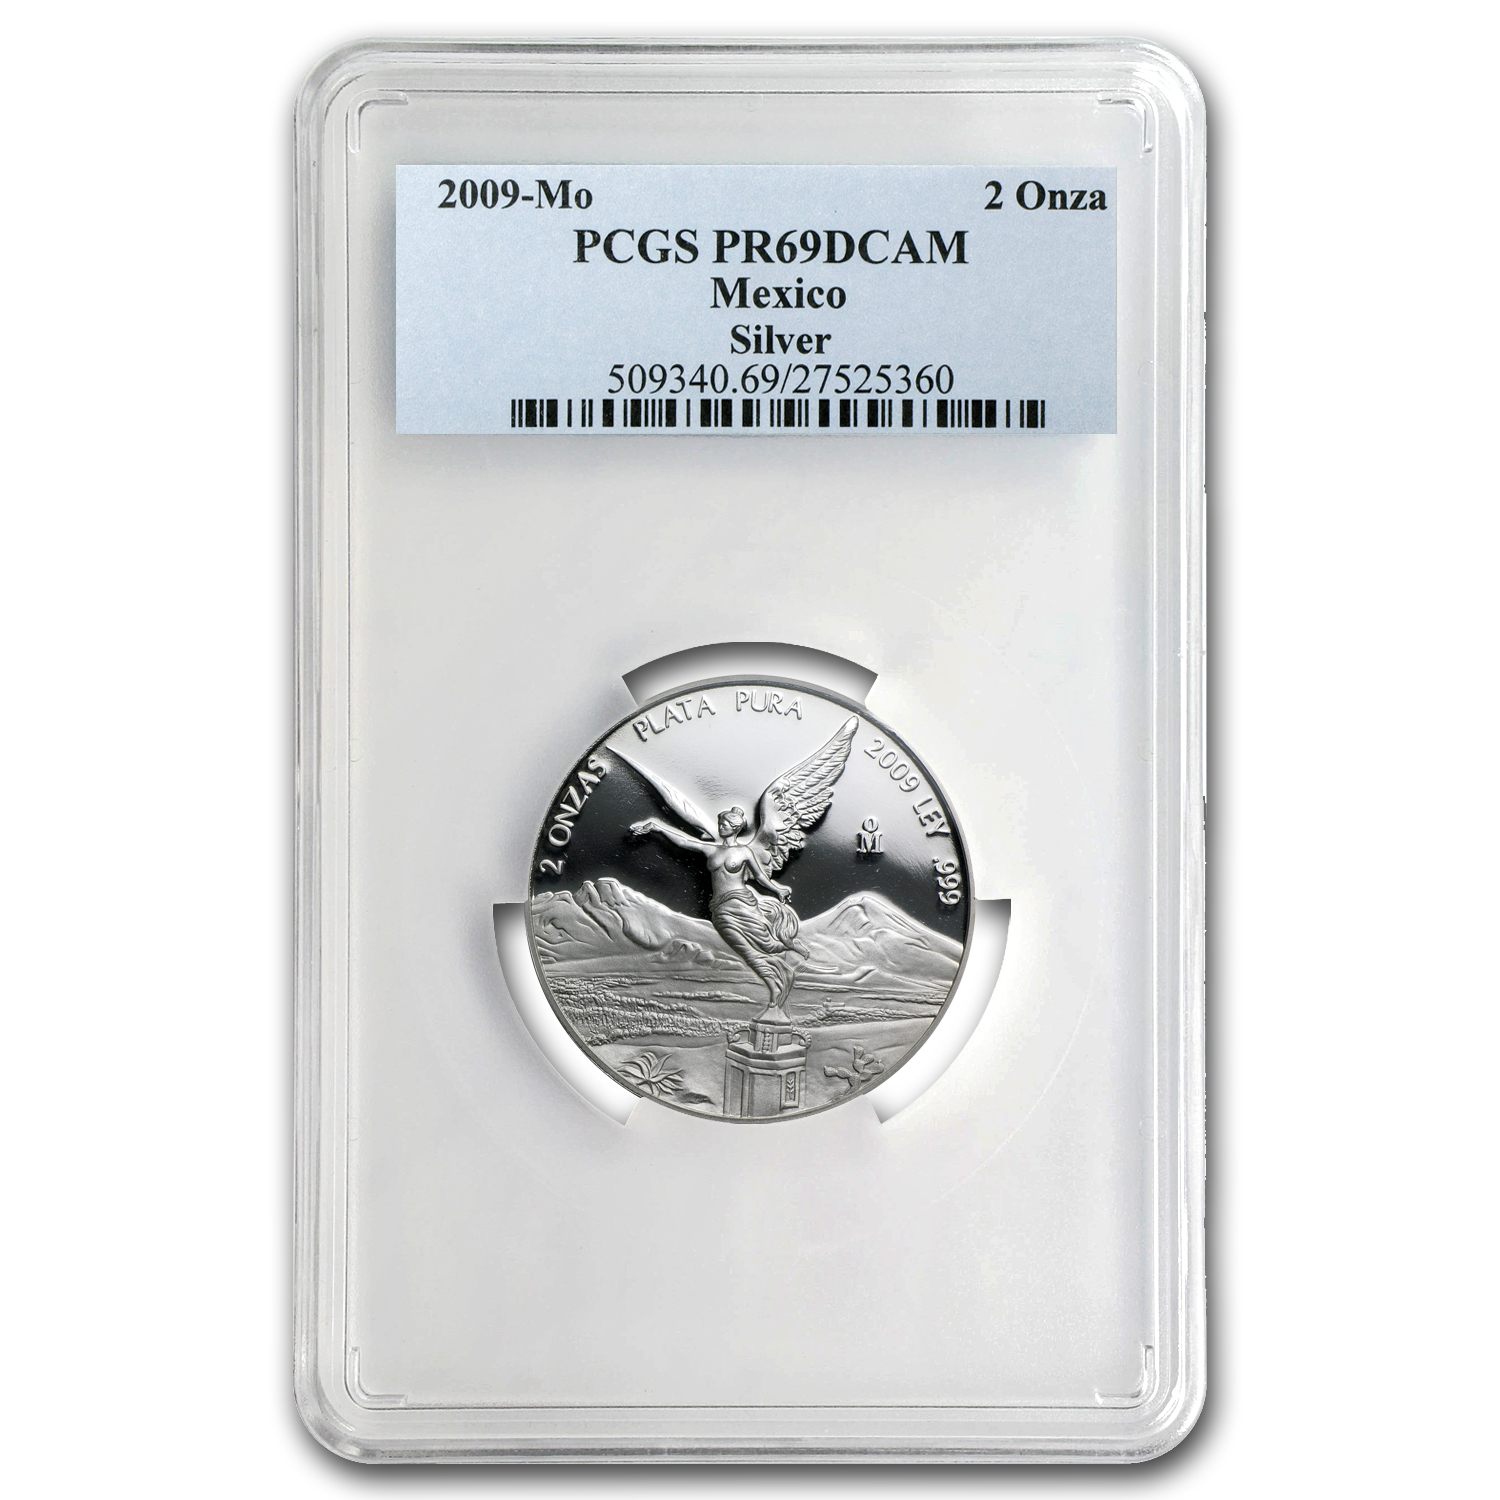 2009 Mexico 2 oz Proof Silver Libertad PR-69 PCGS